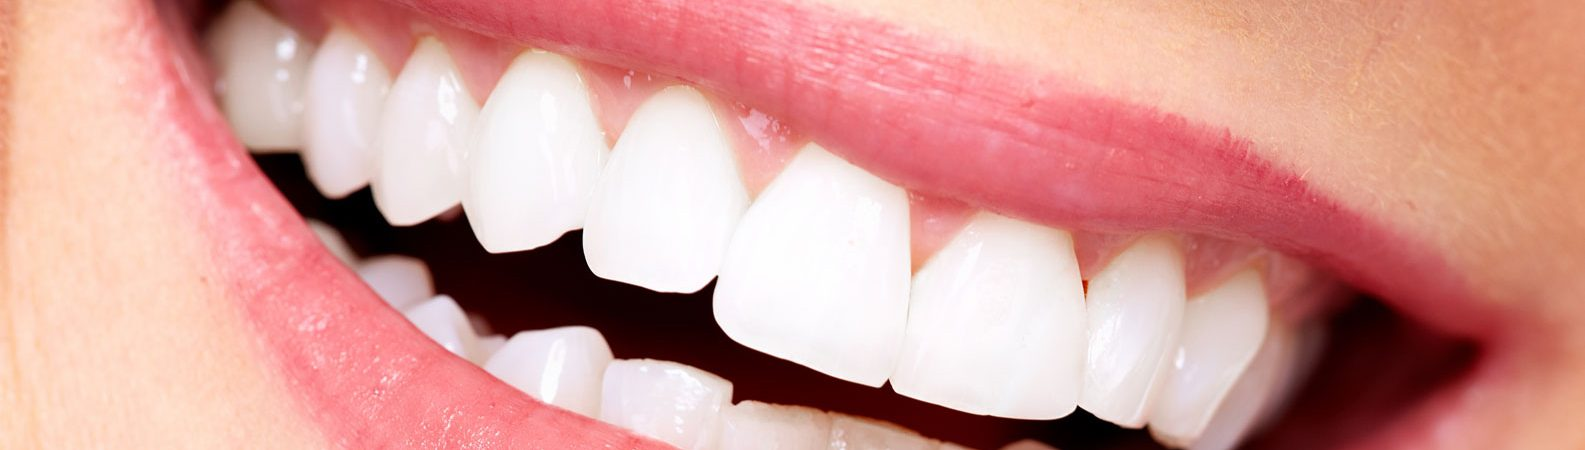 Nonsurgical Gum Disease Treatment